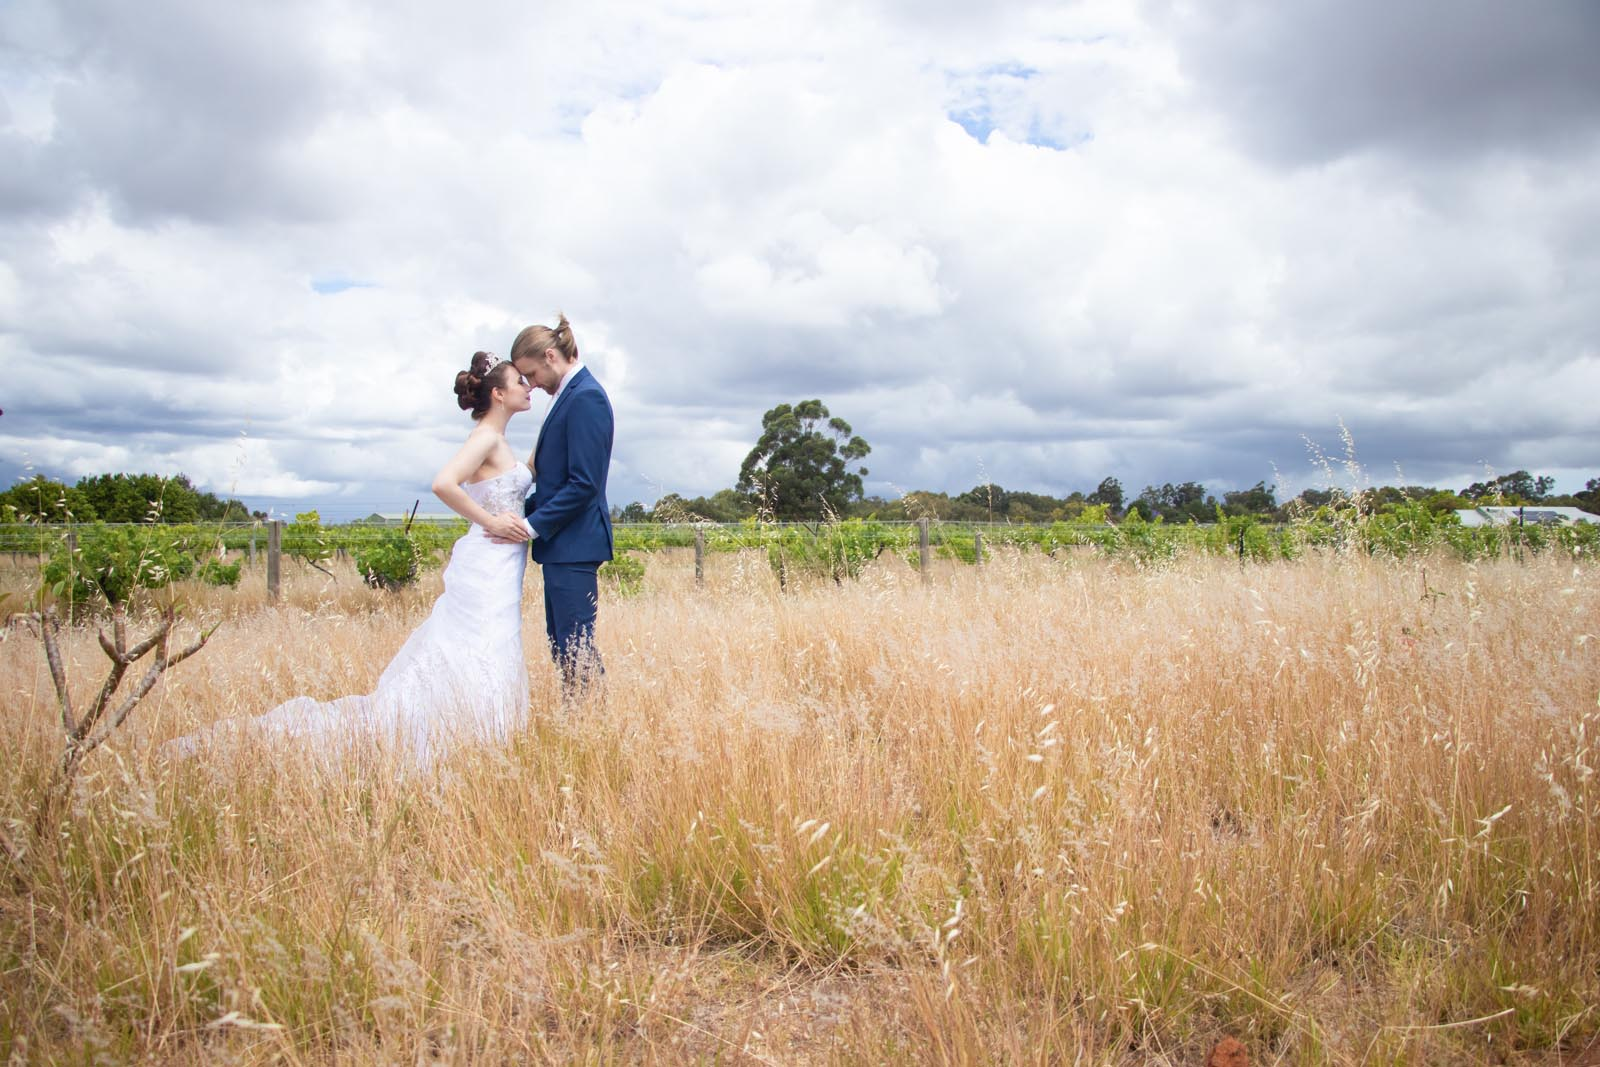 Bride and groom embracing in the field